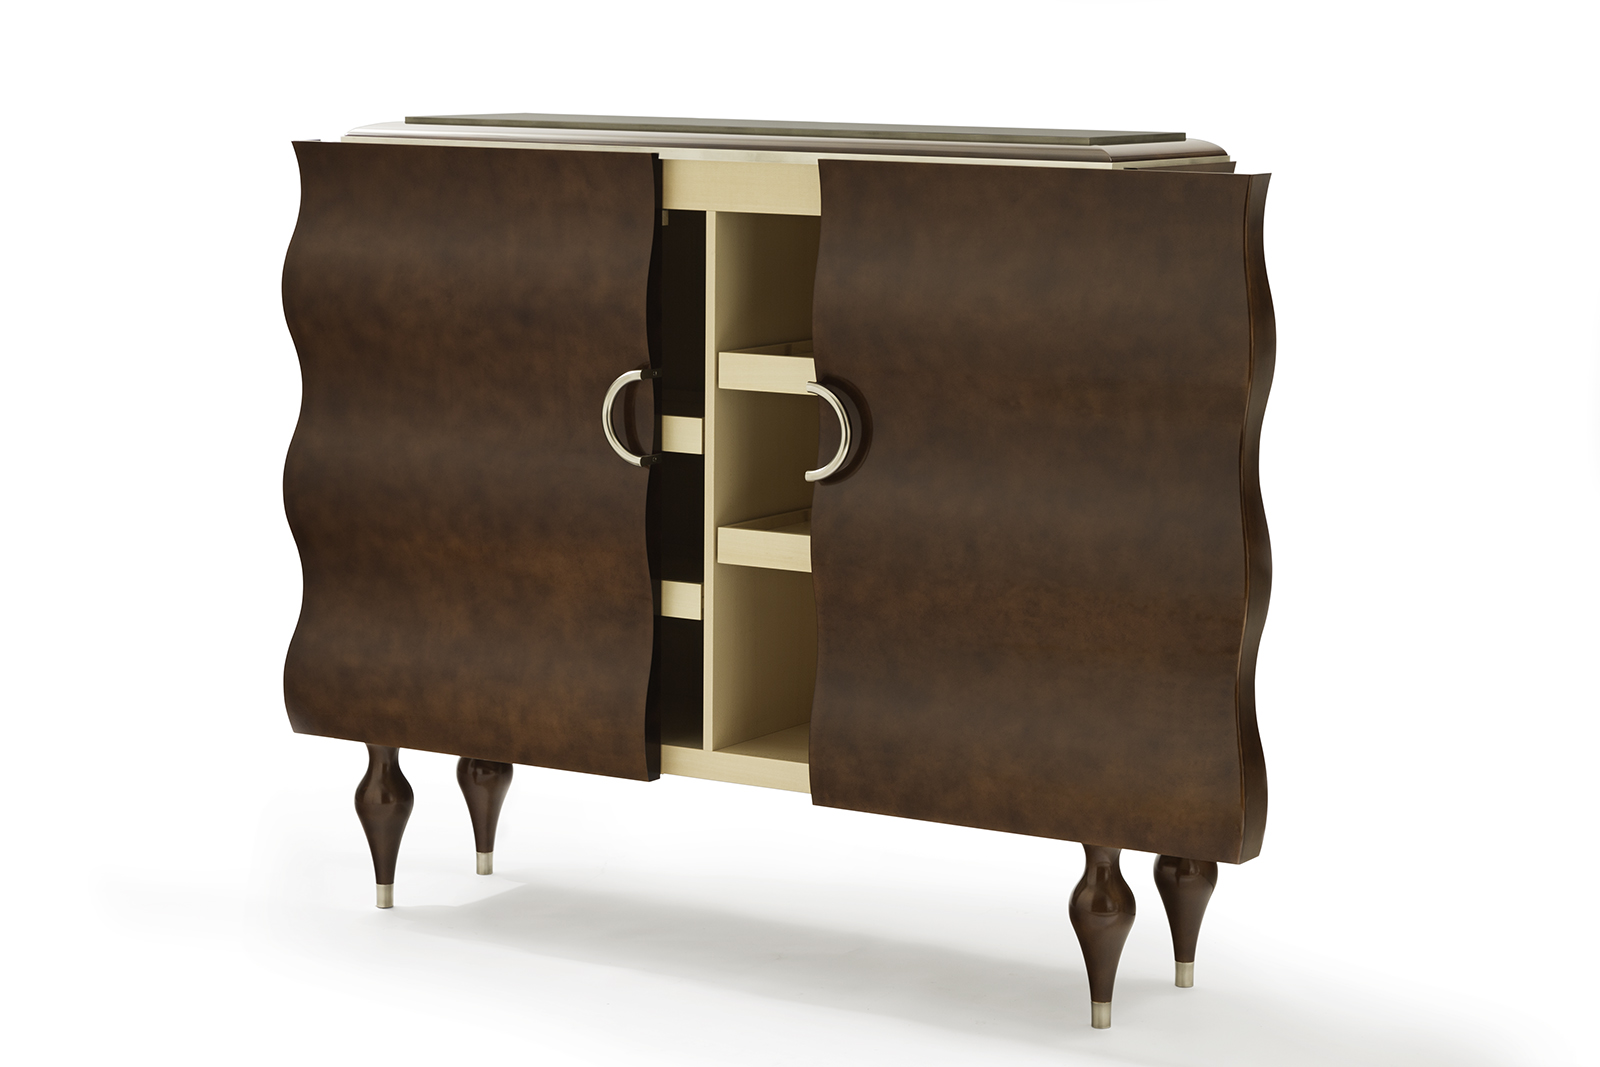 Bar Cabinet In Sycamore, Pewter & Tone-on-Tone Lacquer